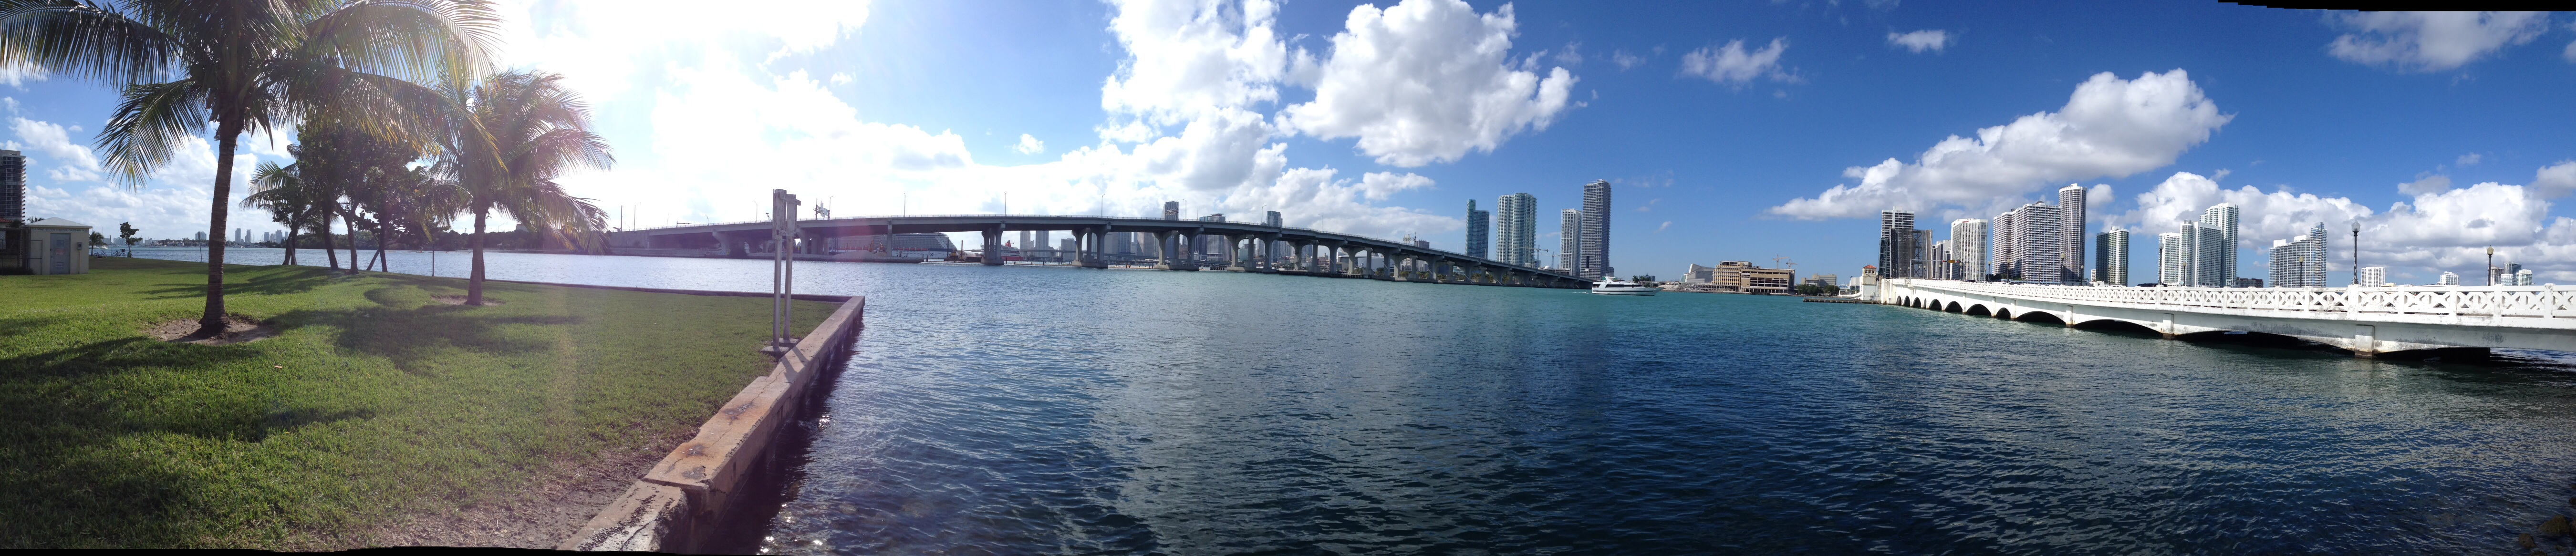 Venetian Causeway and Downtown